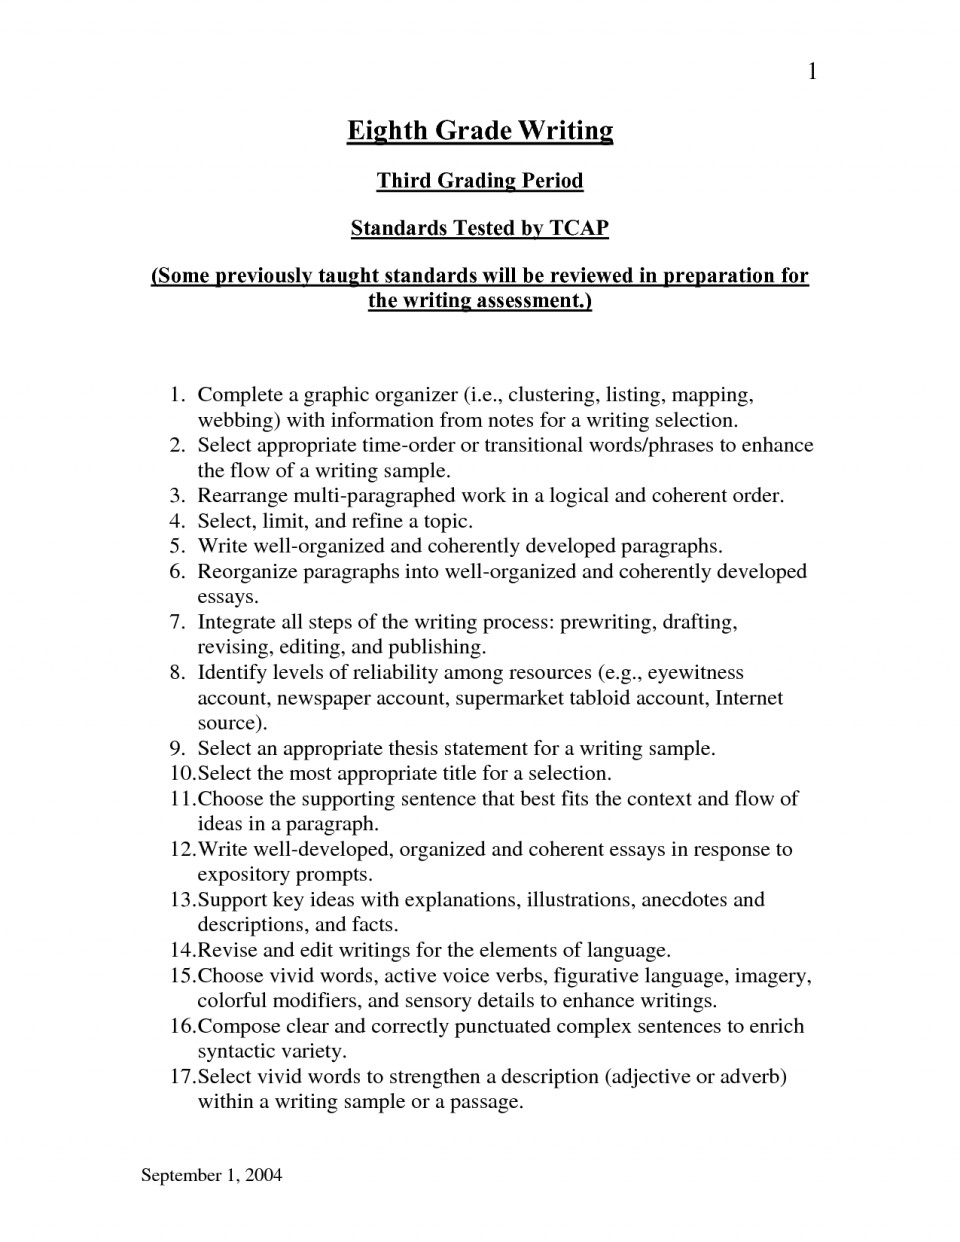 012 Essay Example What Is An Expository Writing Prompts For High School 1088622 Magnificent Gcu Middle Powerpoint 960